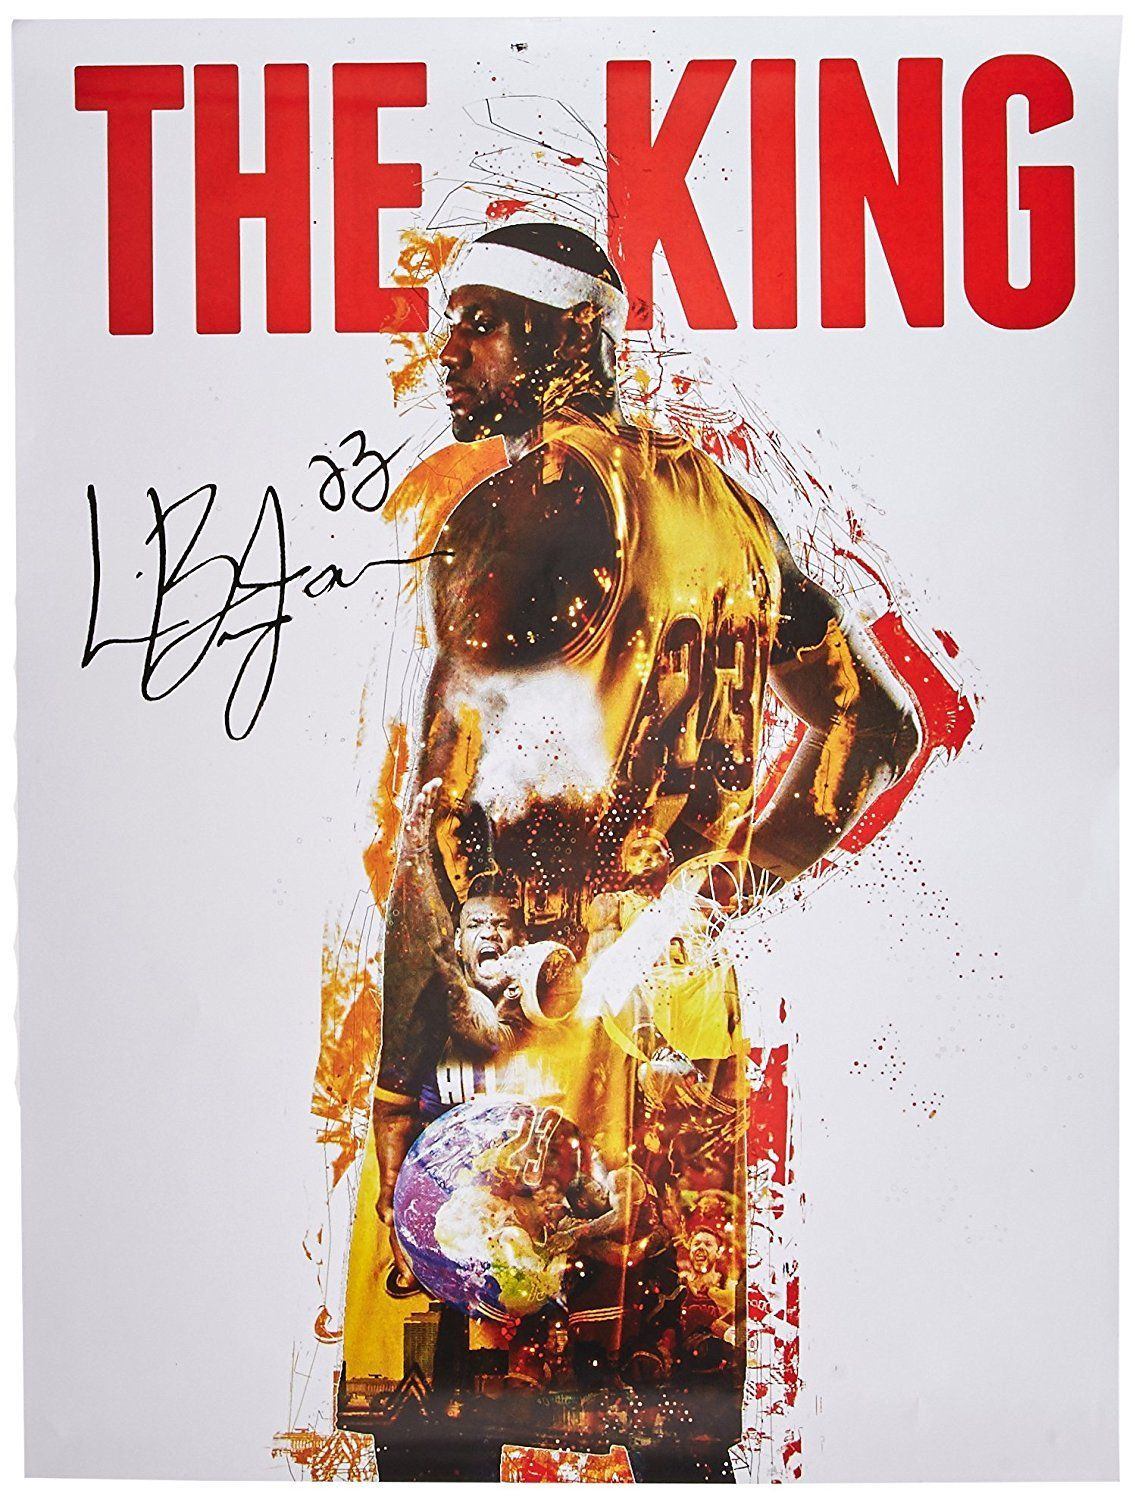 456c170f8706 The Lebron James The King Poster celebrates one of the greatest athletes of  all-time! - Officially Licensed through NBA - Measures 24x18 - Digital  Signature ...